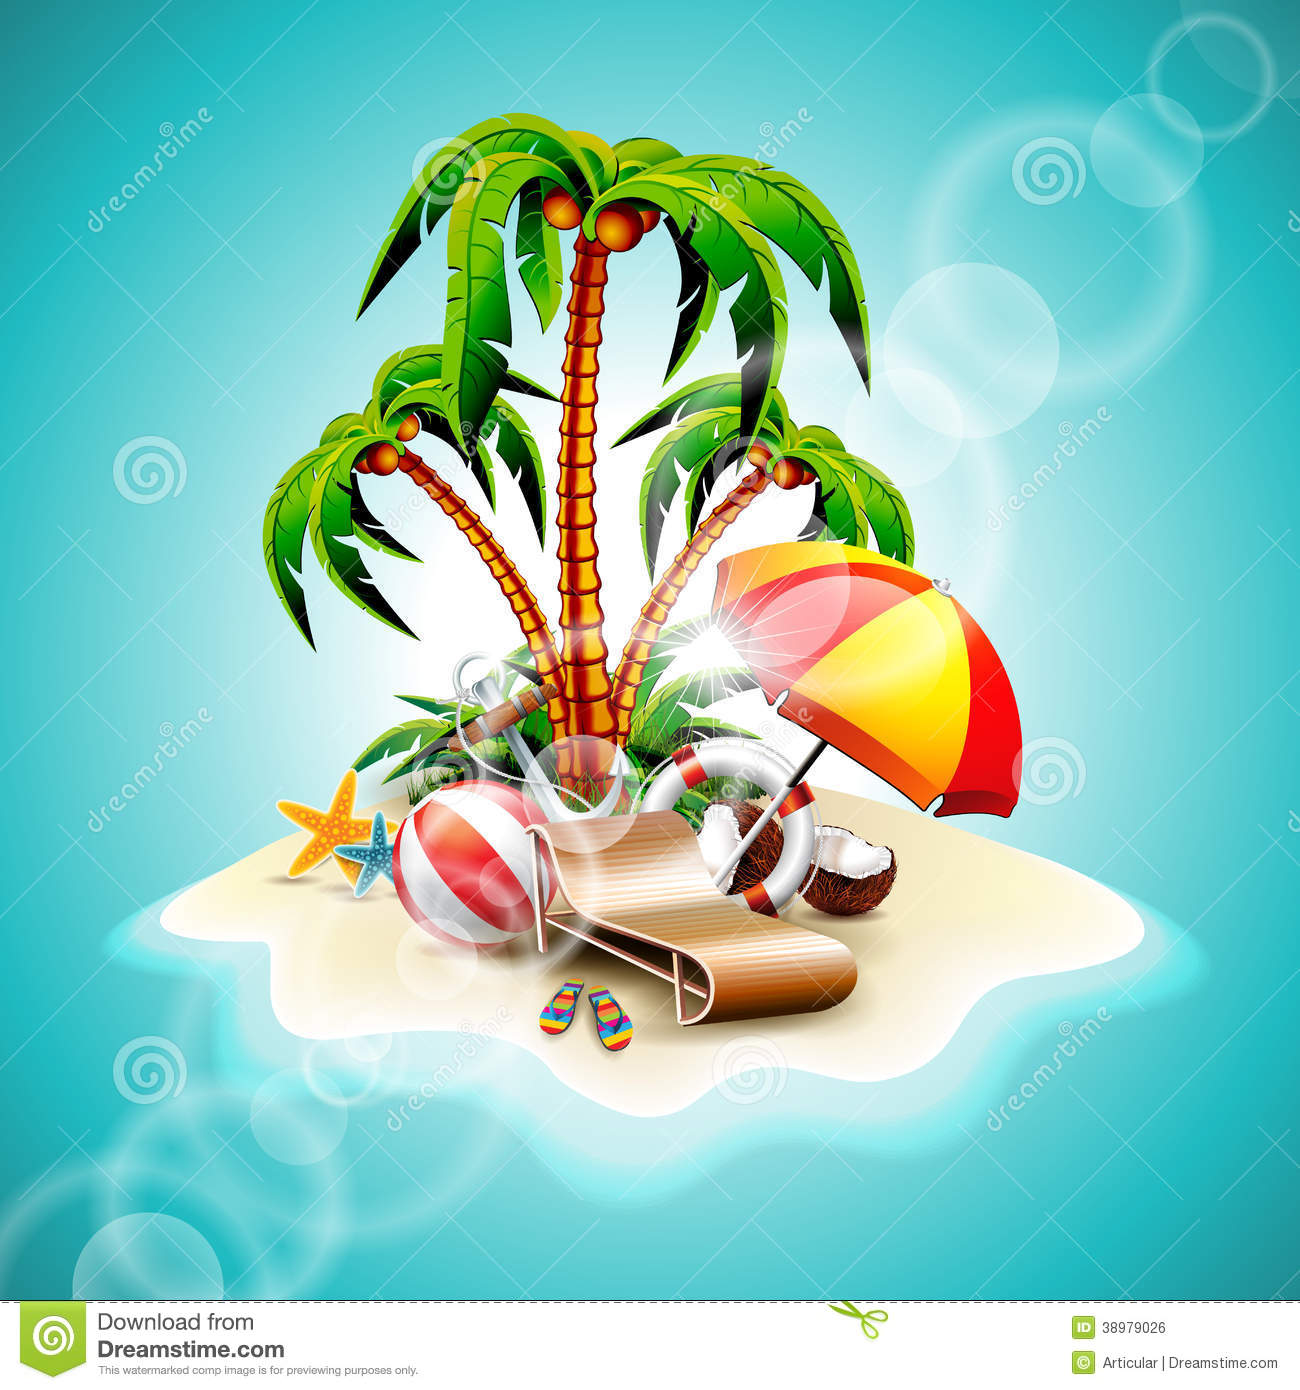 Party Island Beach: Vector Illustration On A Summer Holiday Theme Stock Vector